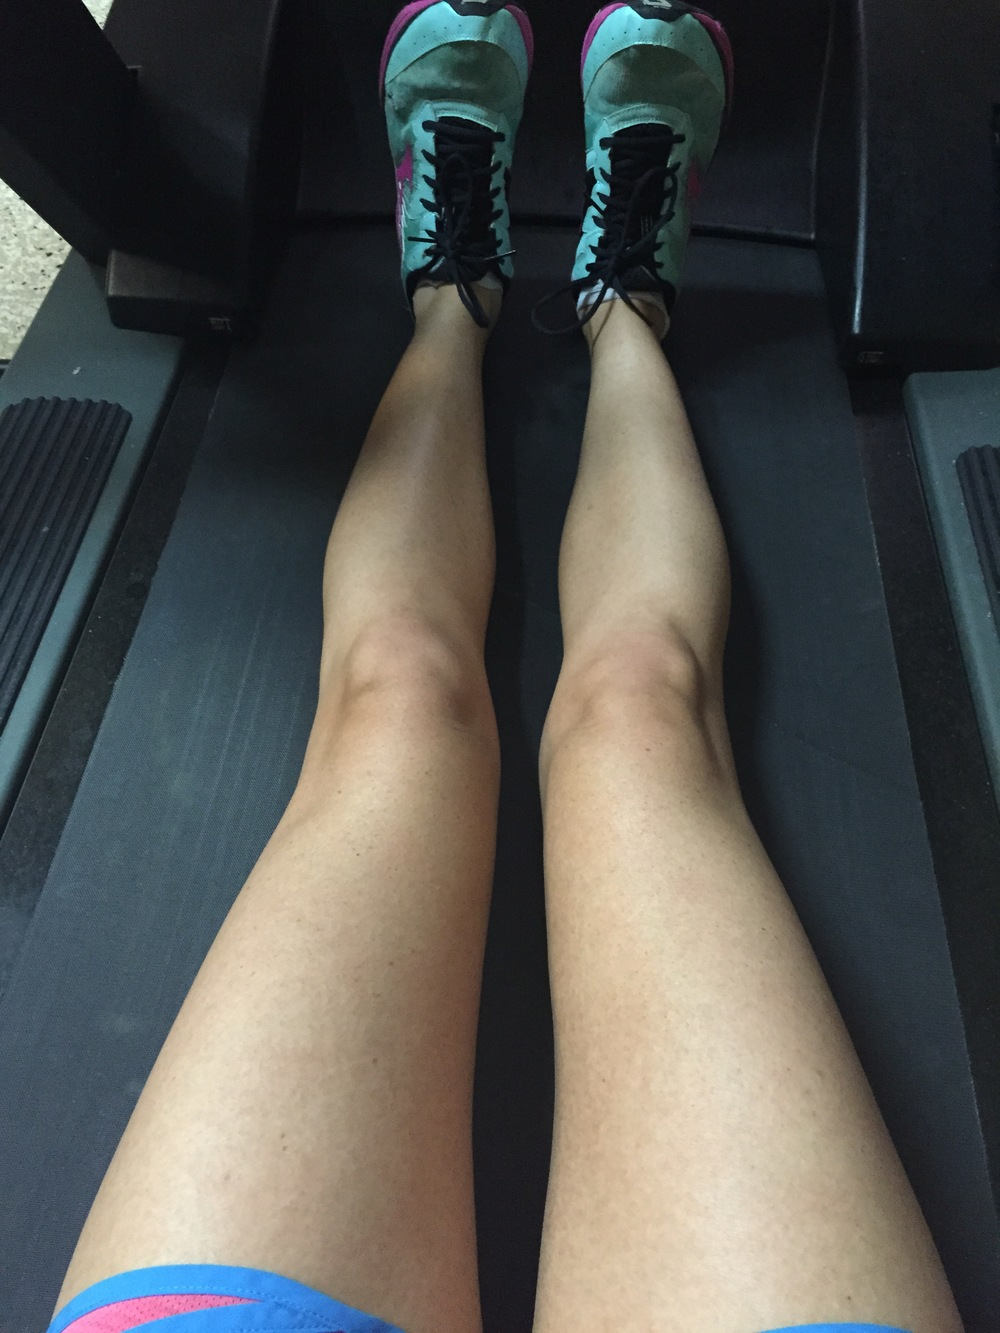 where my legs basically live. my treadmill. i wish i got to be in this position all of the time tho. much more comfortable.